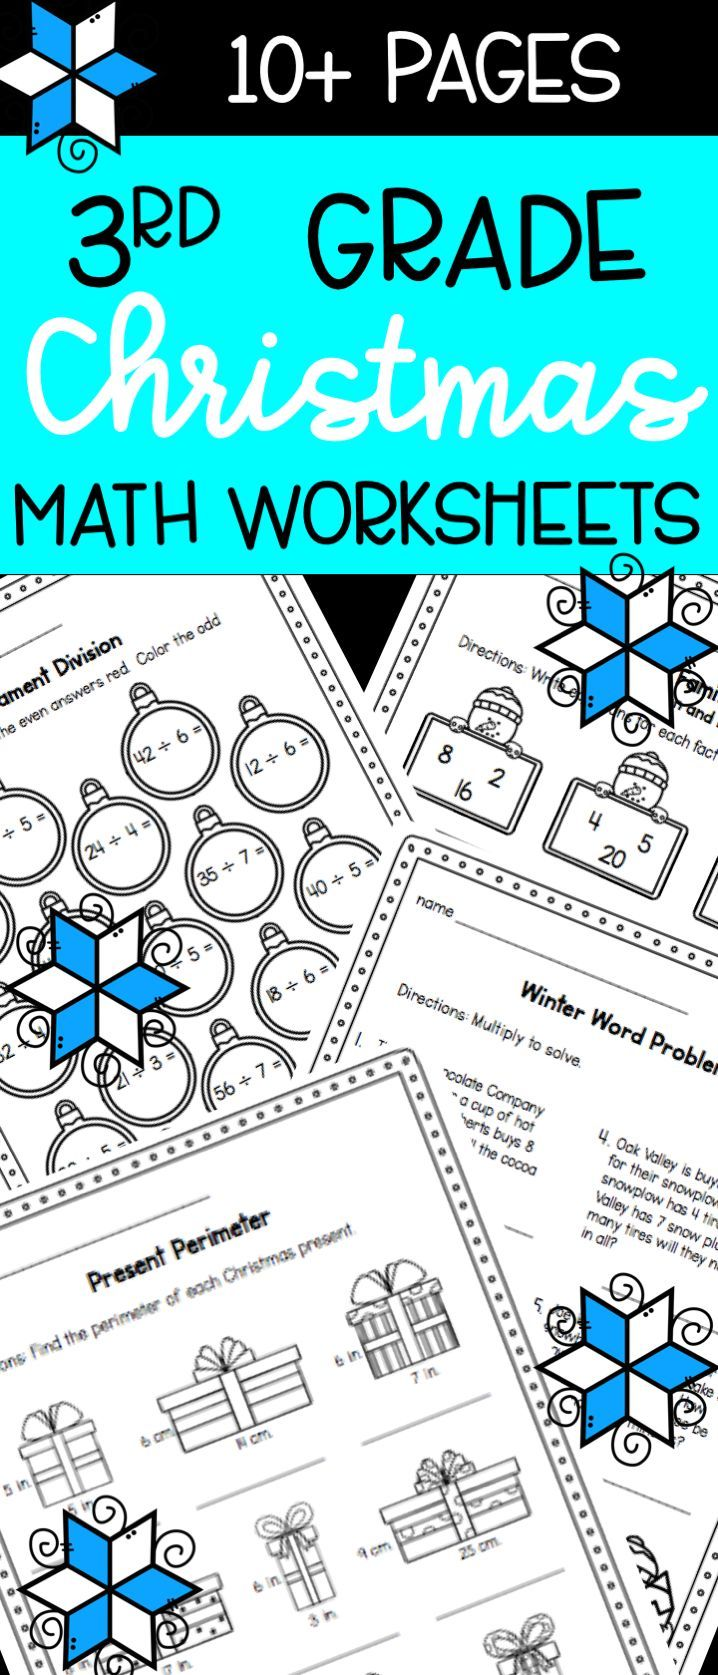 Christmas Worksheets Math Practice Pages For 3rd Graders Fun Math Worksheets 3rd Grade Math Math Worksheets